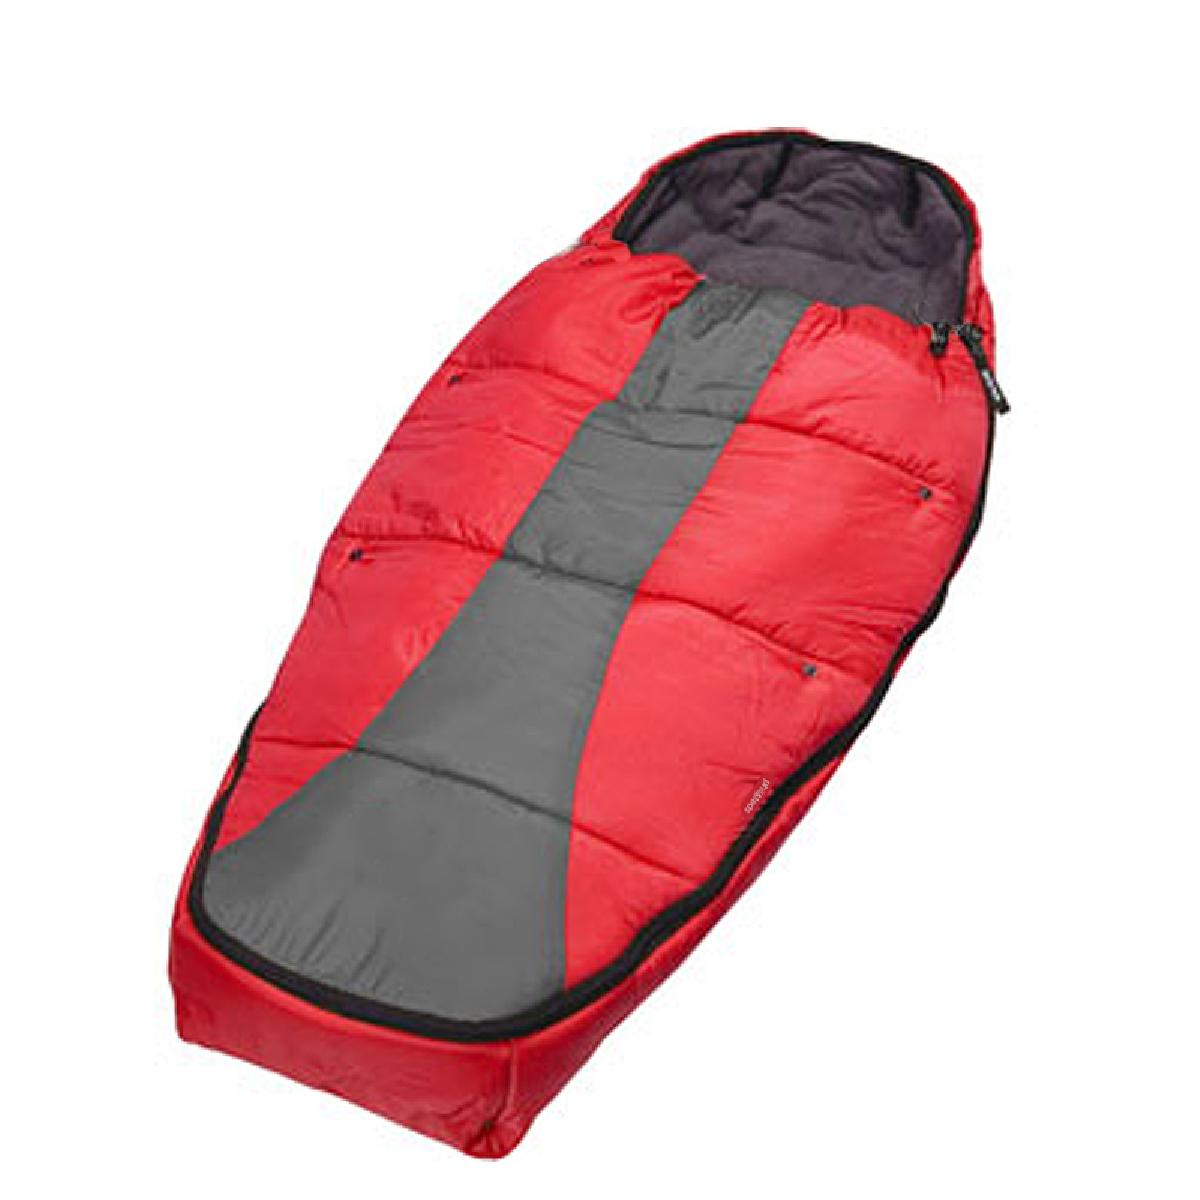 Sleeping bag RED-CHARCOAL-30